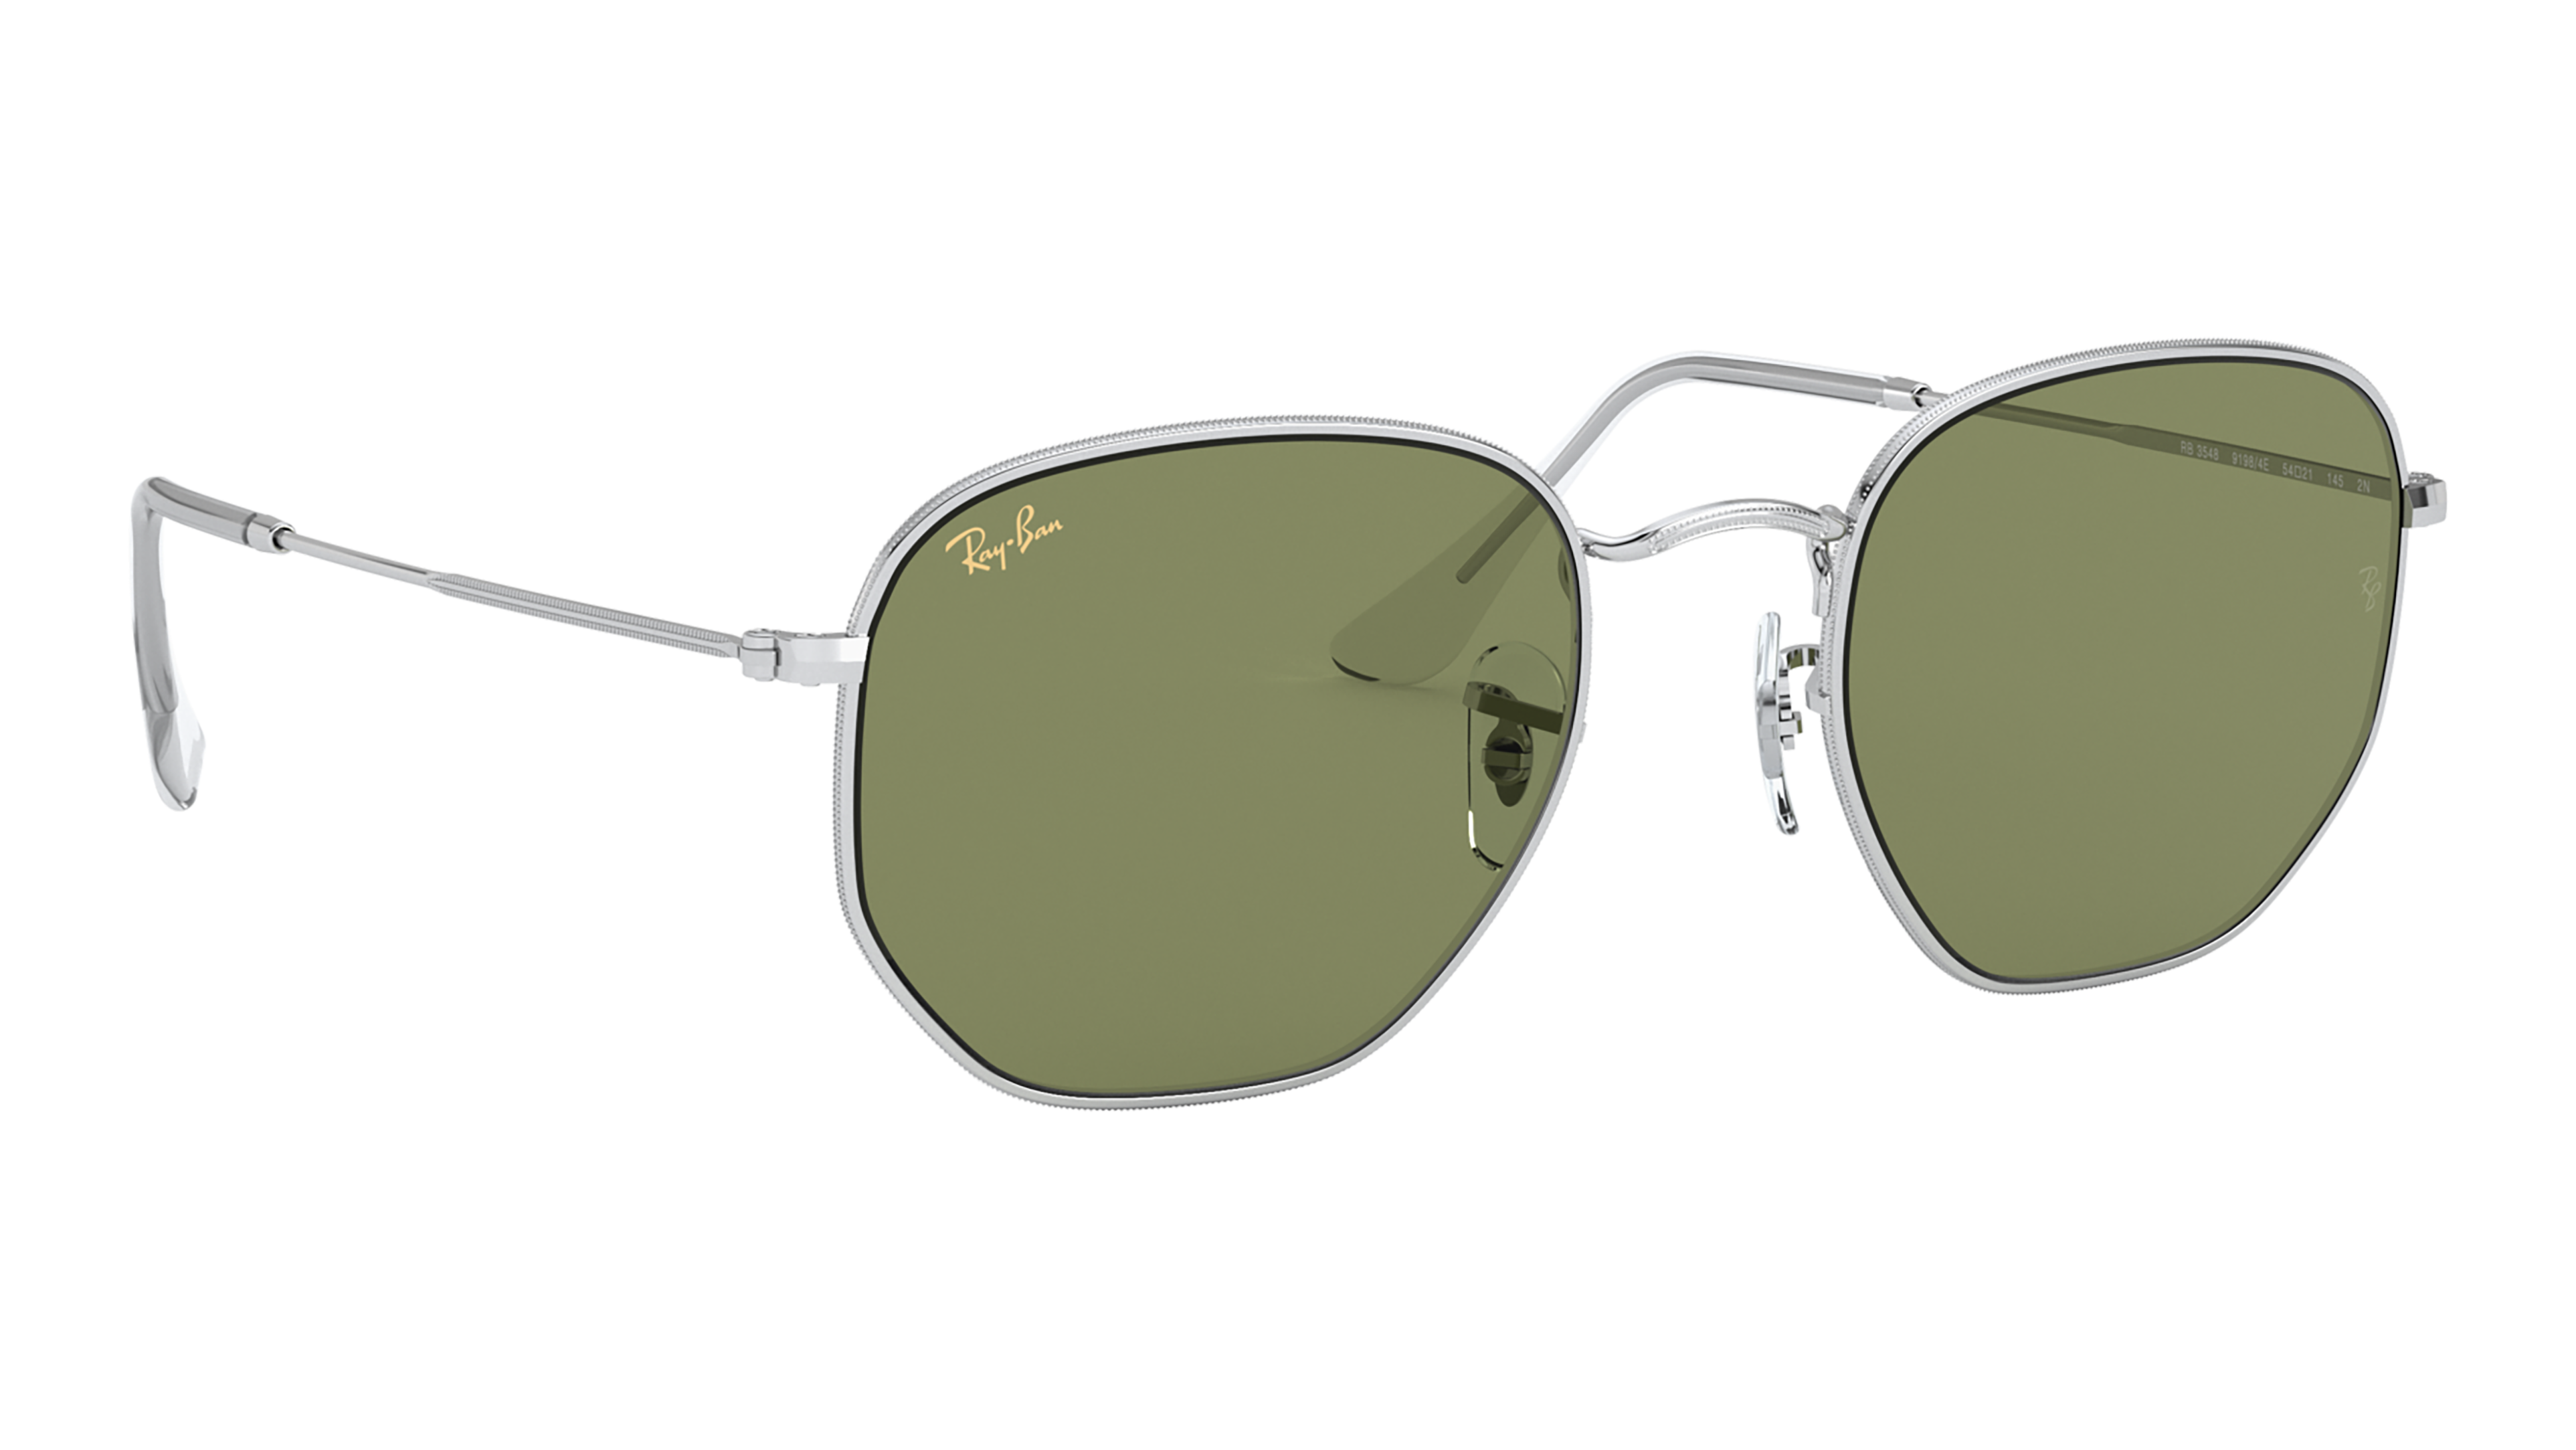 Angle_Right02 Ray-Ban Ray-Ban 0RB3548 91984E 54/21 Zilver/Groen